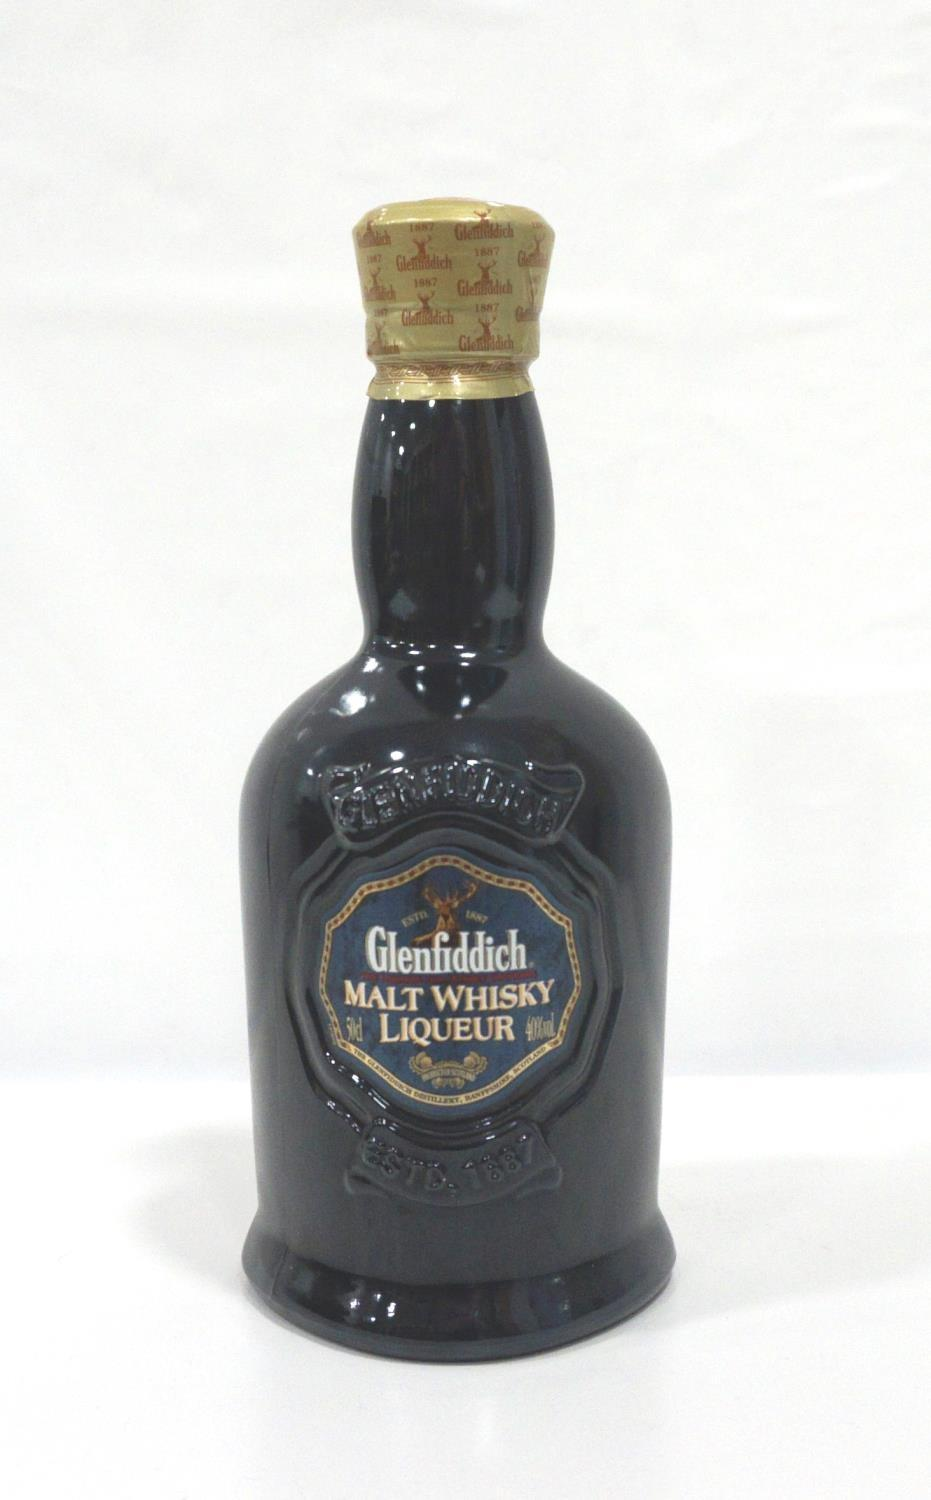 Lot 32 - GLENFIDDICH MALT WHISKY LIQUEUR A highly sought after and long discontinued bottle of the